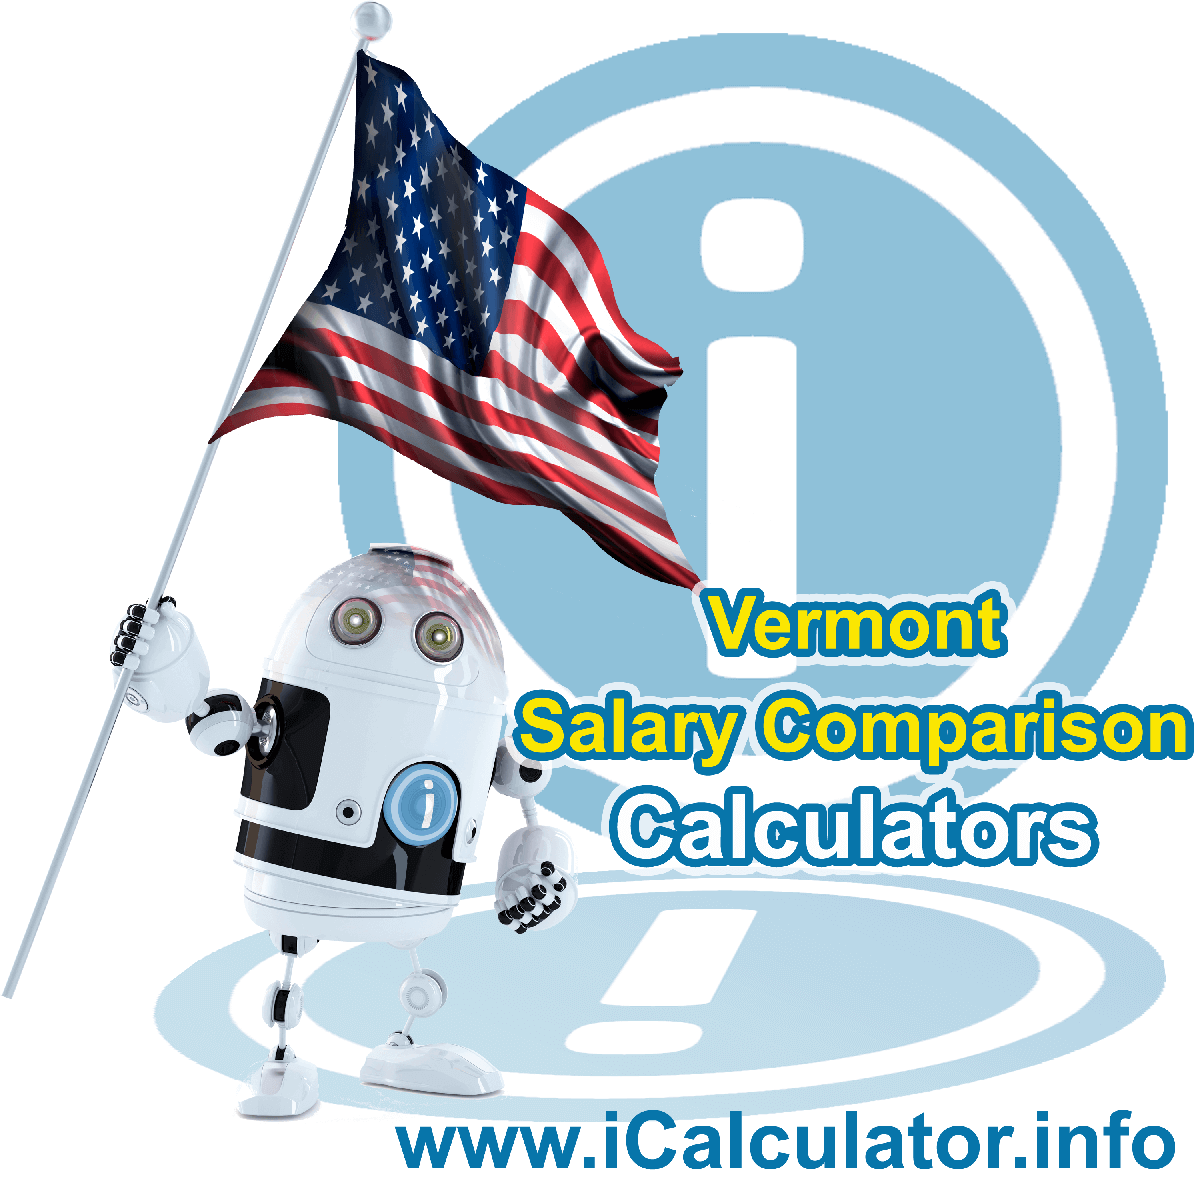 Vermont Salary Comparison Calculator 2020 | iCalculator | The Vermont Salary Comparison Calculator allows you to quickly calculate and compare upto 6 salaries in Vermont or between other states for the 2020 tax year and historical tax years. Its an excellent tool for jobseekers, pay raise comparison and comparison of salaries between different US States